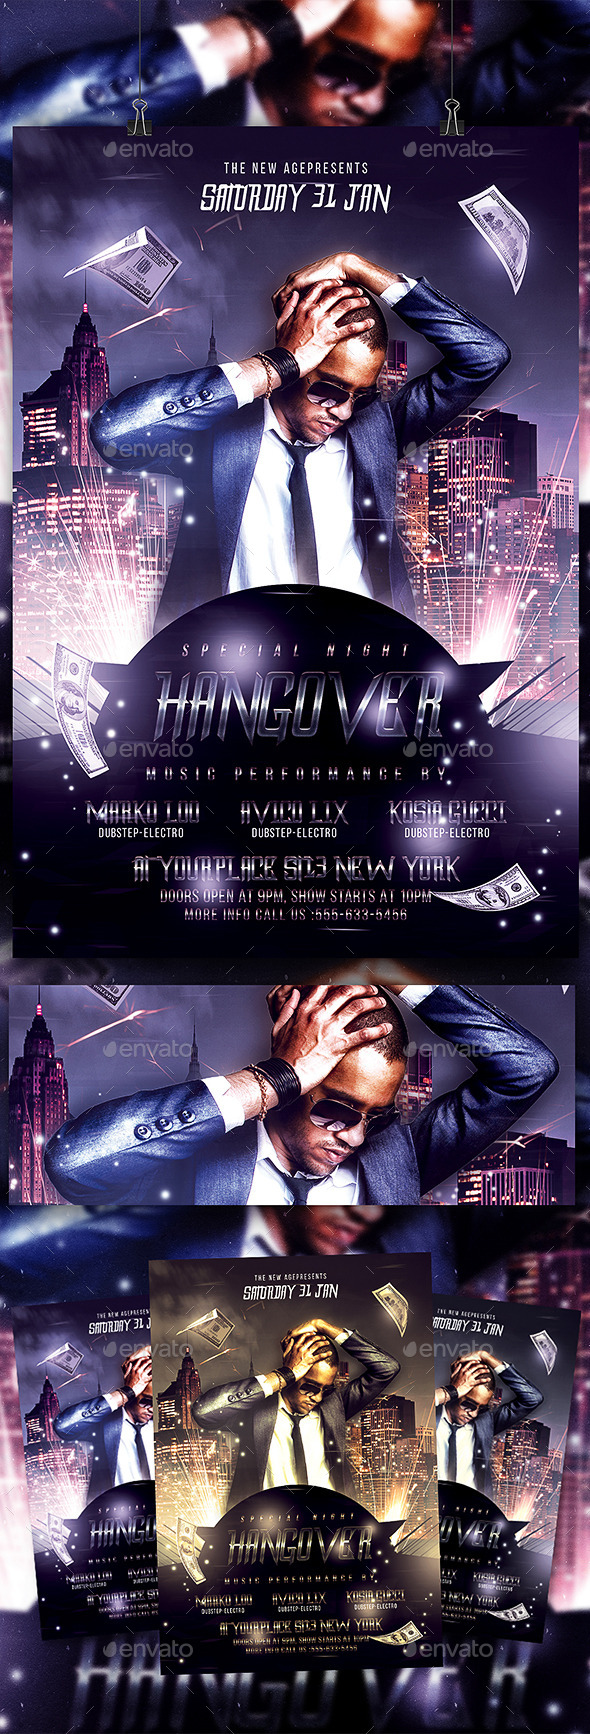 Special Night Hangover - Flyer Template - Clubs & Parties Events